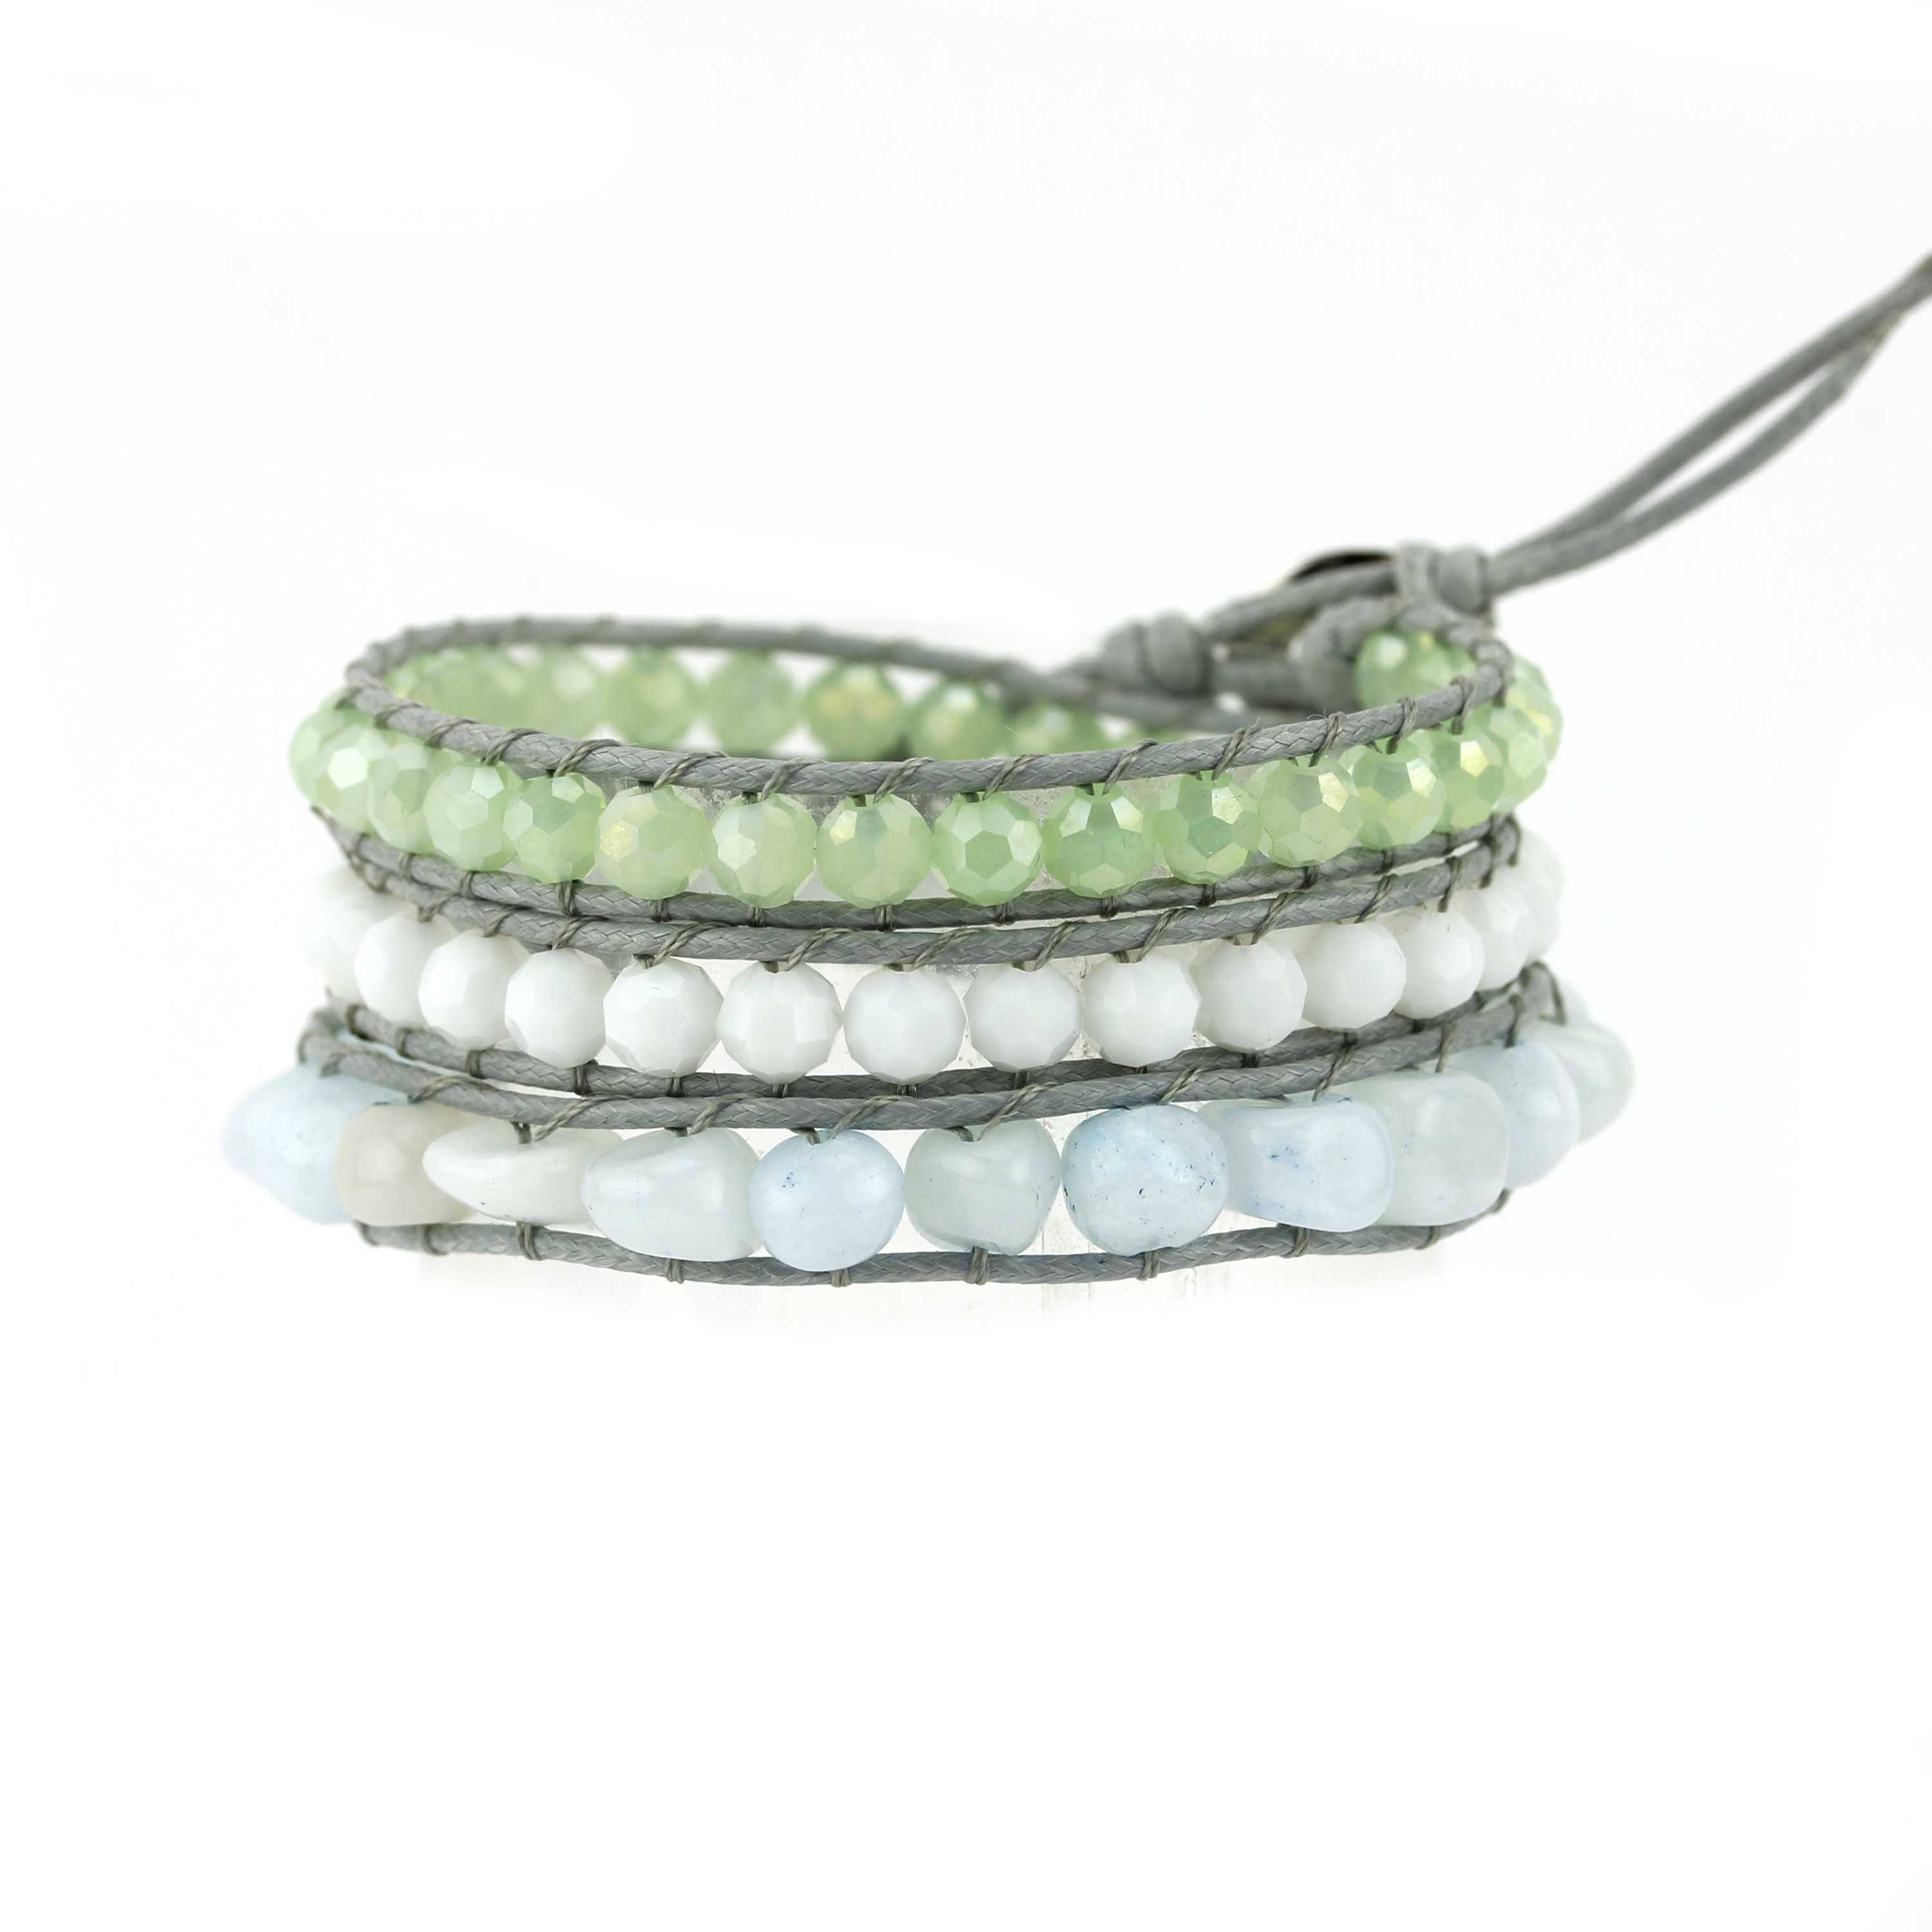 TTT Jewelry Crystal Beads & Natural Stone Beads Wrap Handmade Bracelet 3 Wraps image7